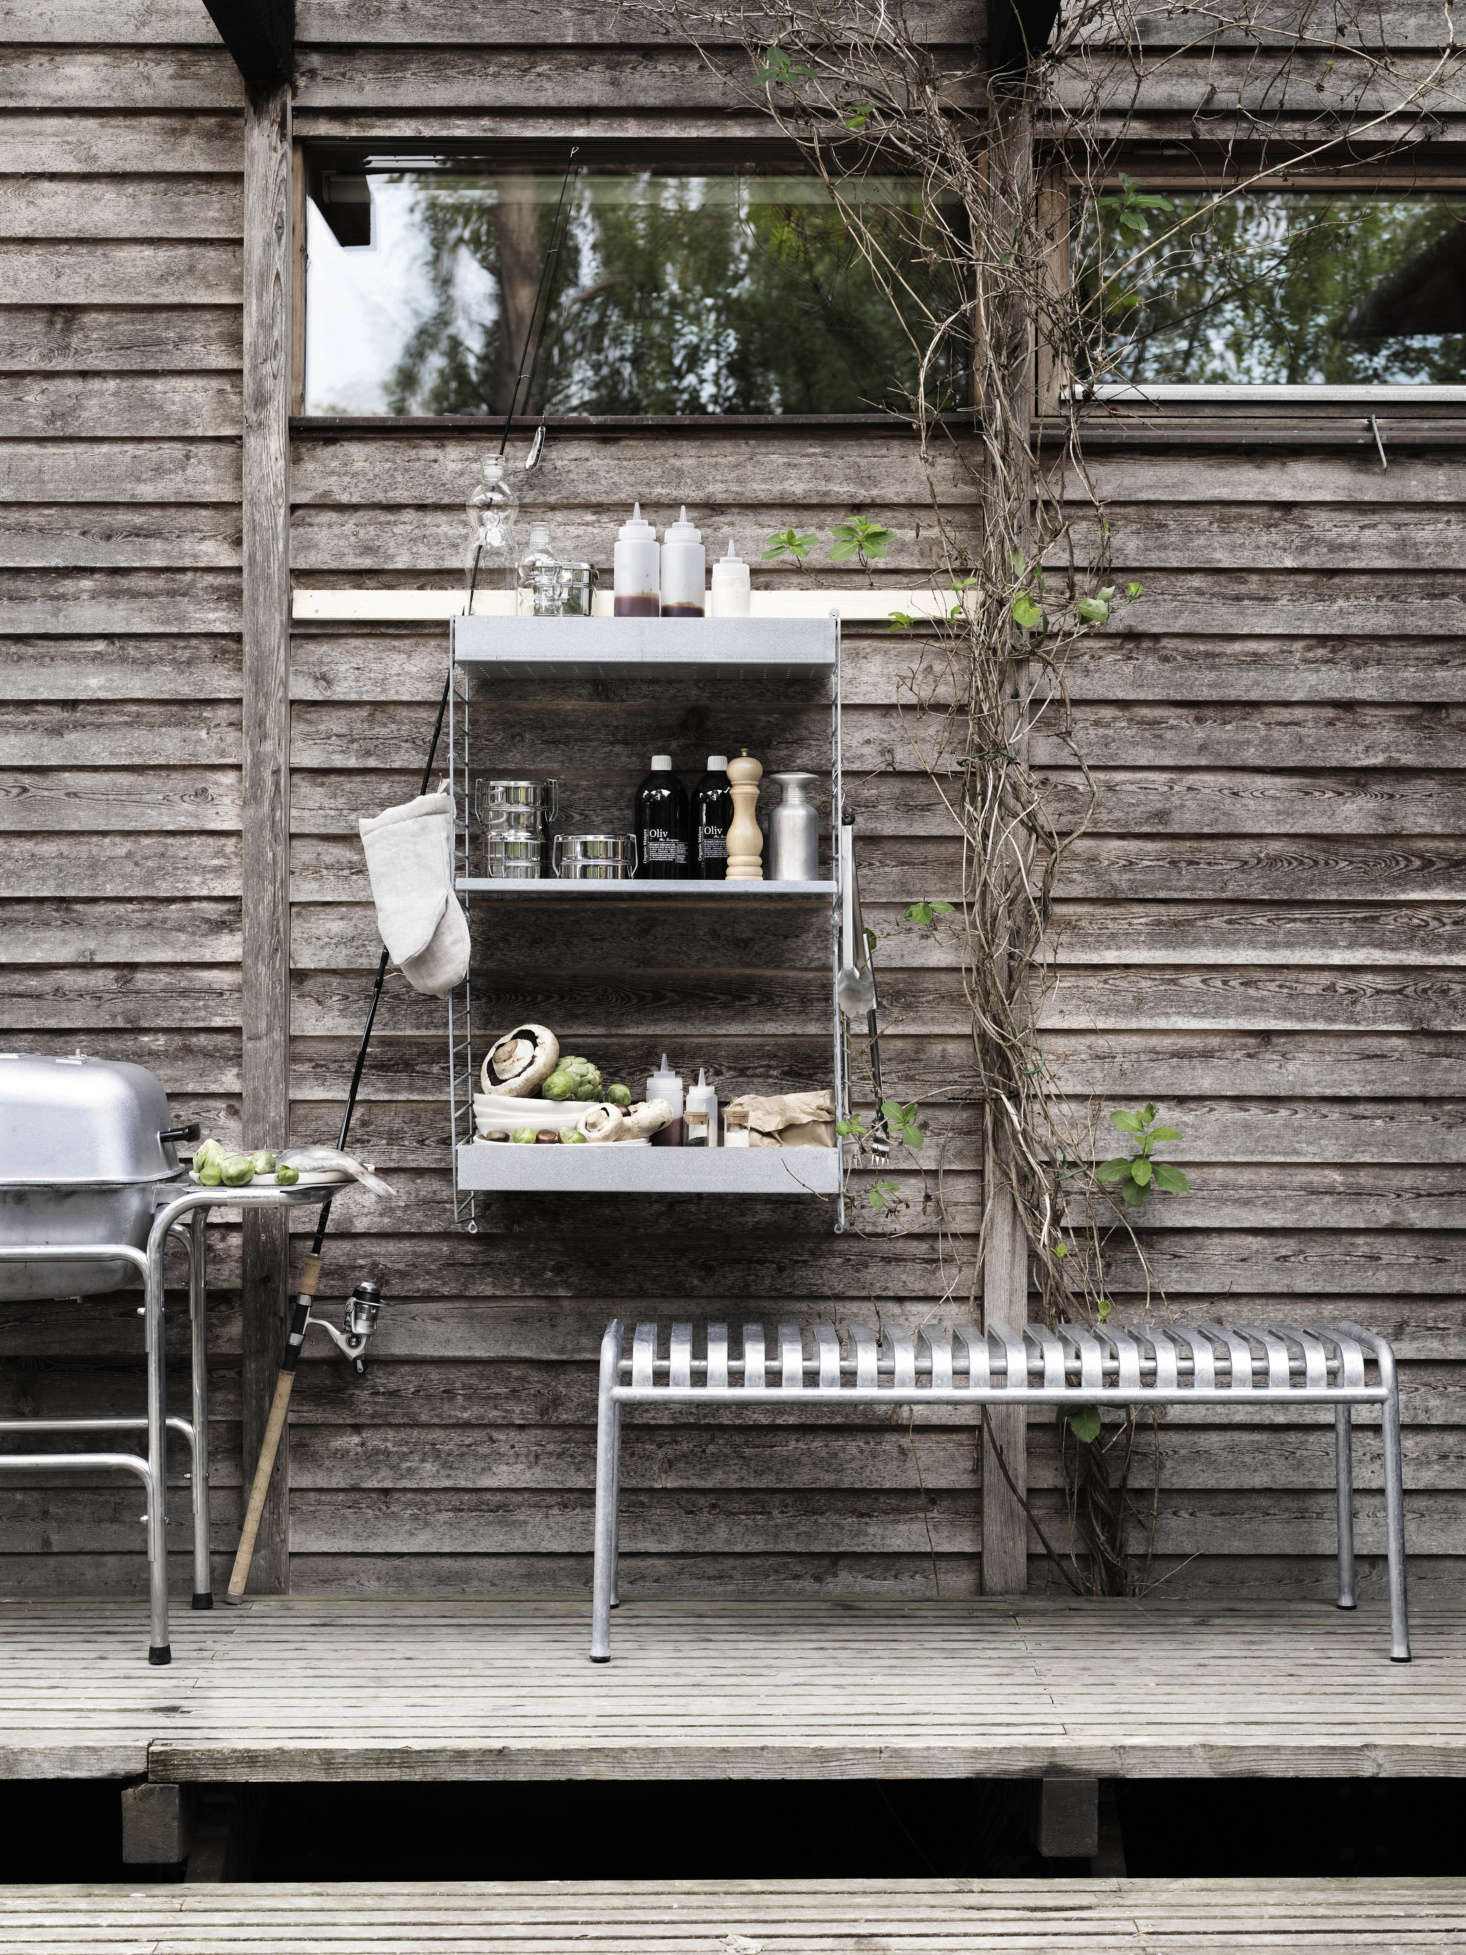 The shelves make an ideal companion to an outdoor grill. Metal hooks are available for hanging tools and accessories.